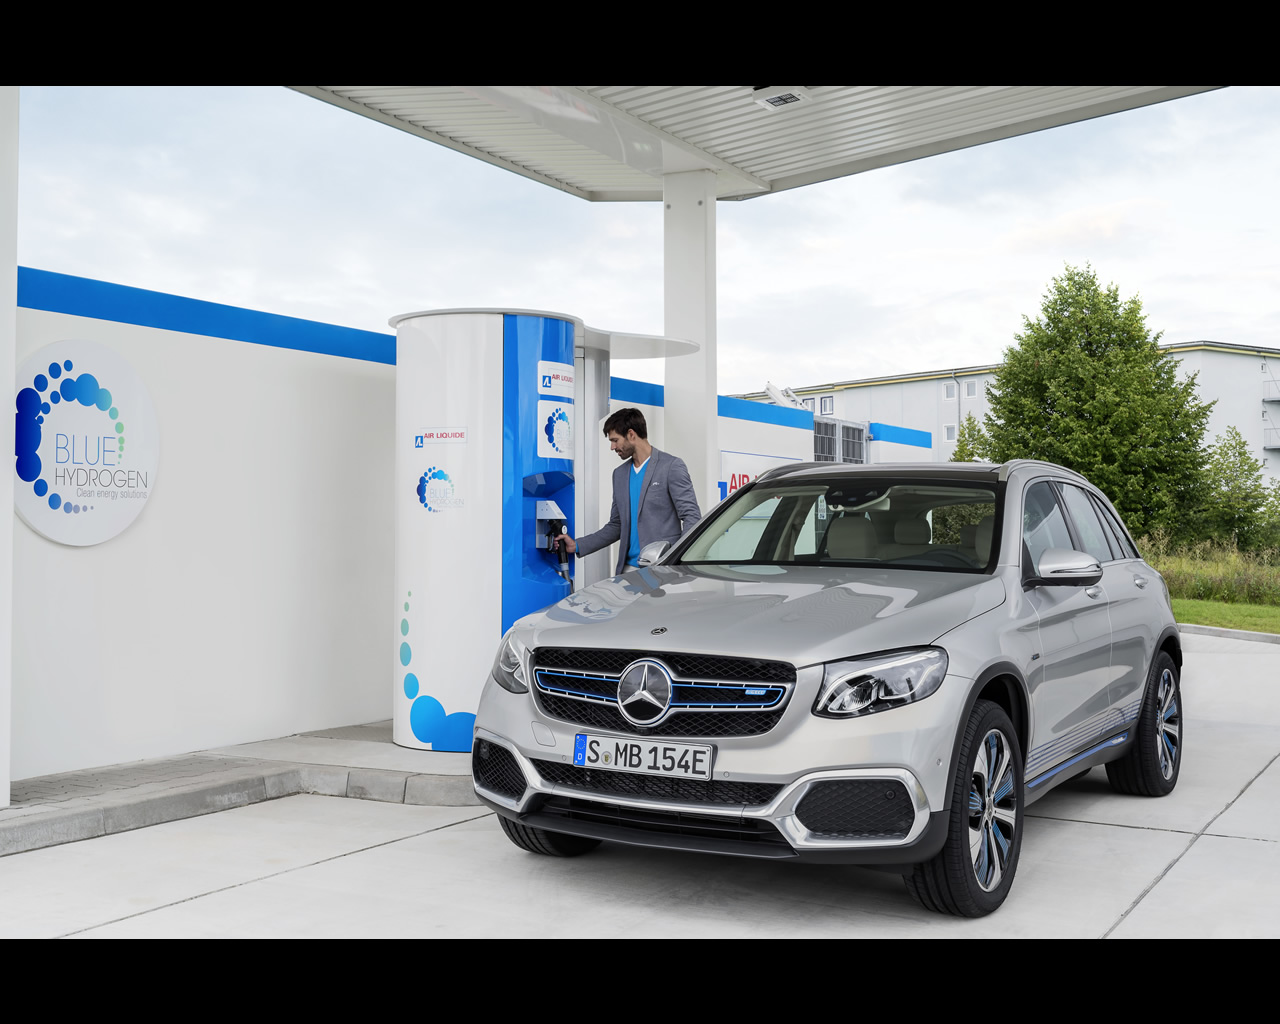 http://autoconcept-reviews.com/cars_reviews/mercedes/mercedes-benz-glc-f-cell-hydrogen-fuel-cell-and-plug-in-electric-preproduction-model-2017/wallpapers/6-Mecedes%20Benz%20GLC%20F-CELL%202017.jpg